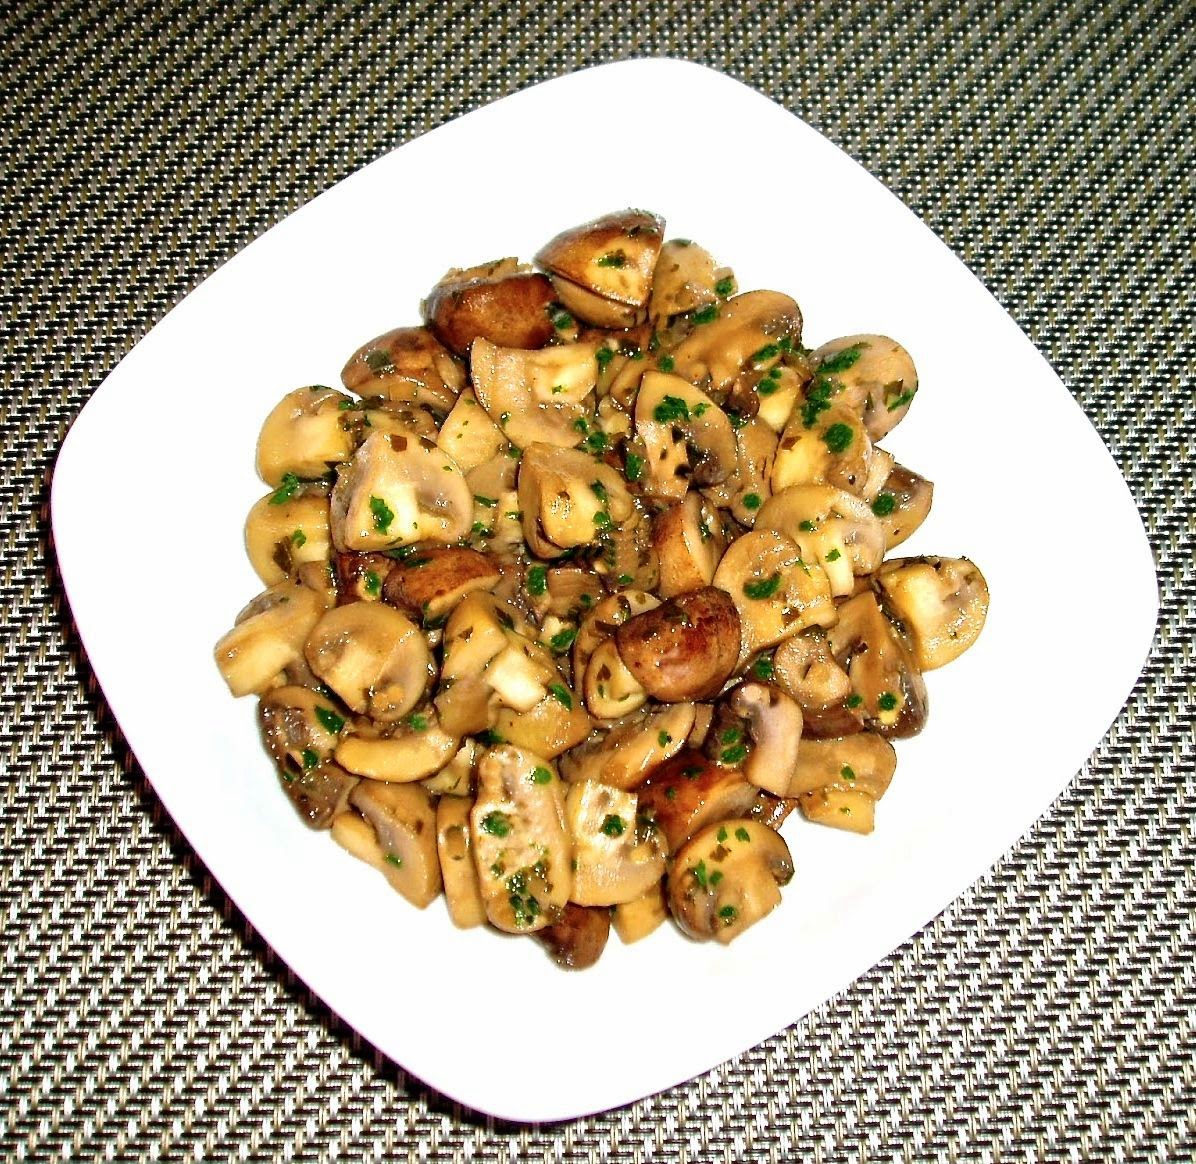 Tarragon Wine-Glazed Mushrooms